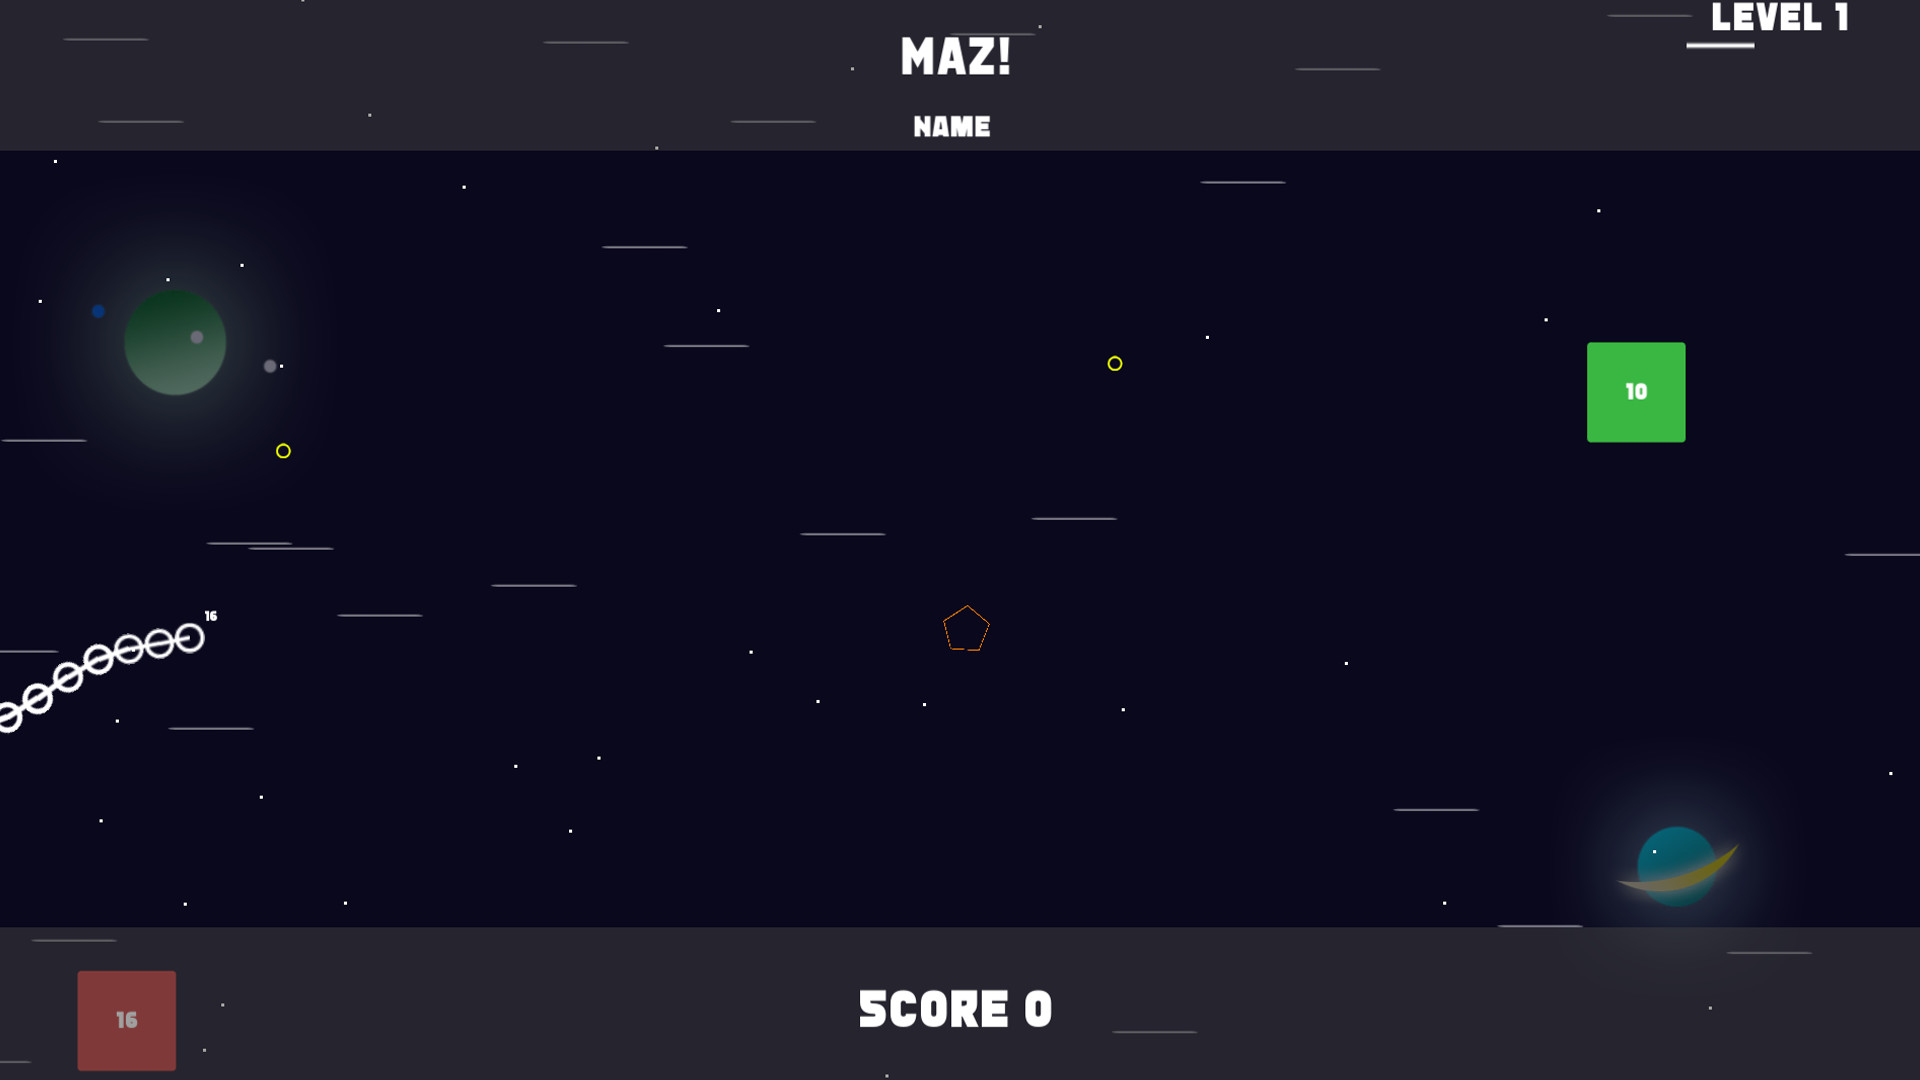 MAZ! screenshot